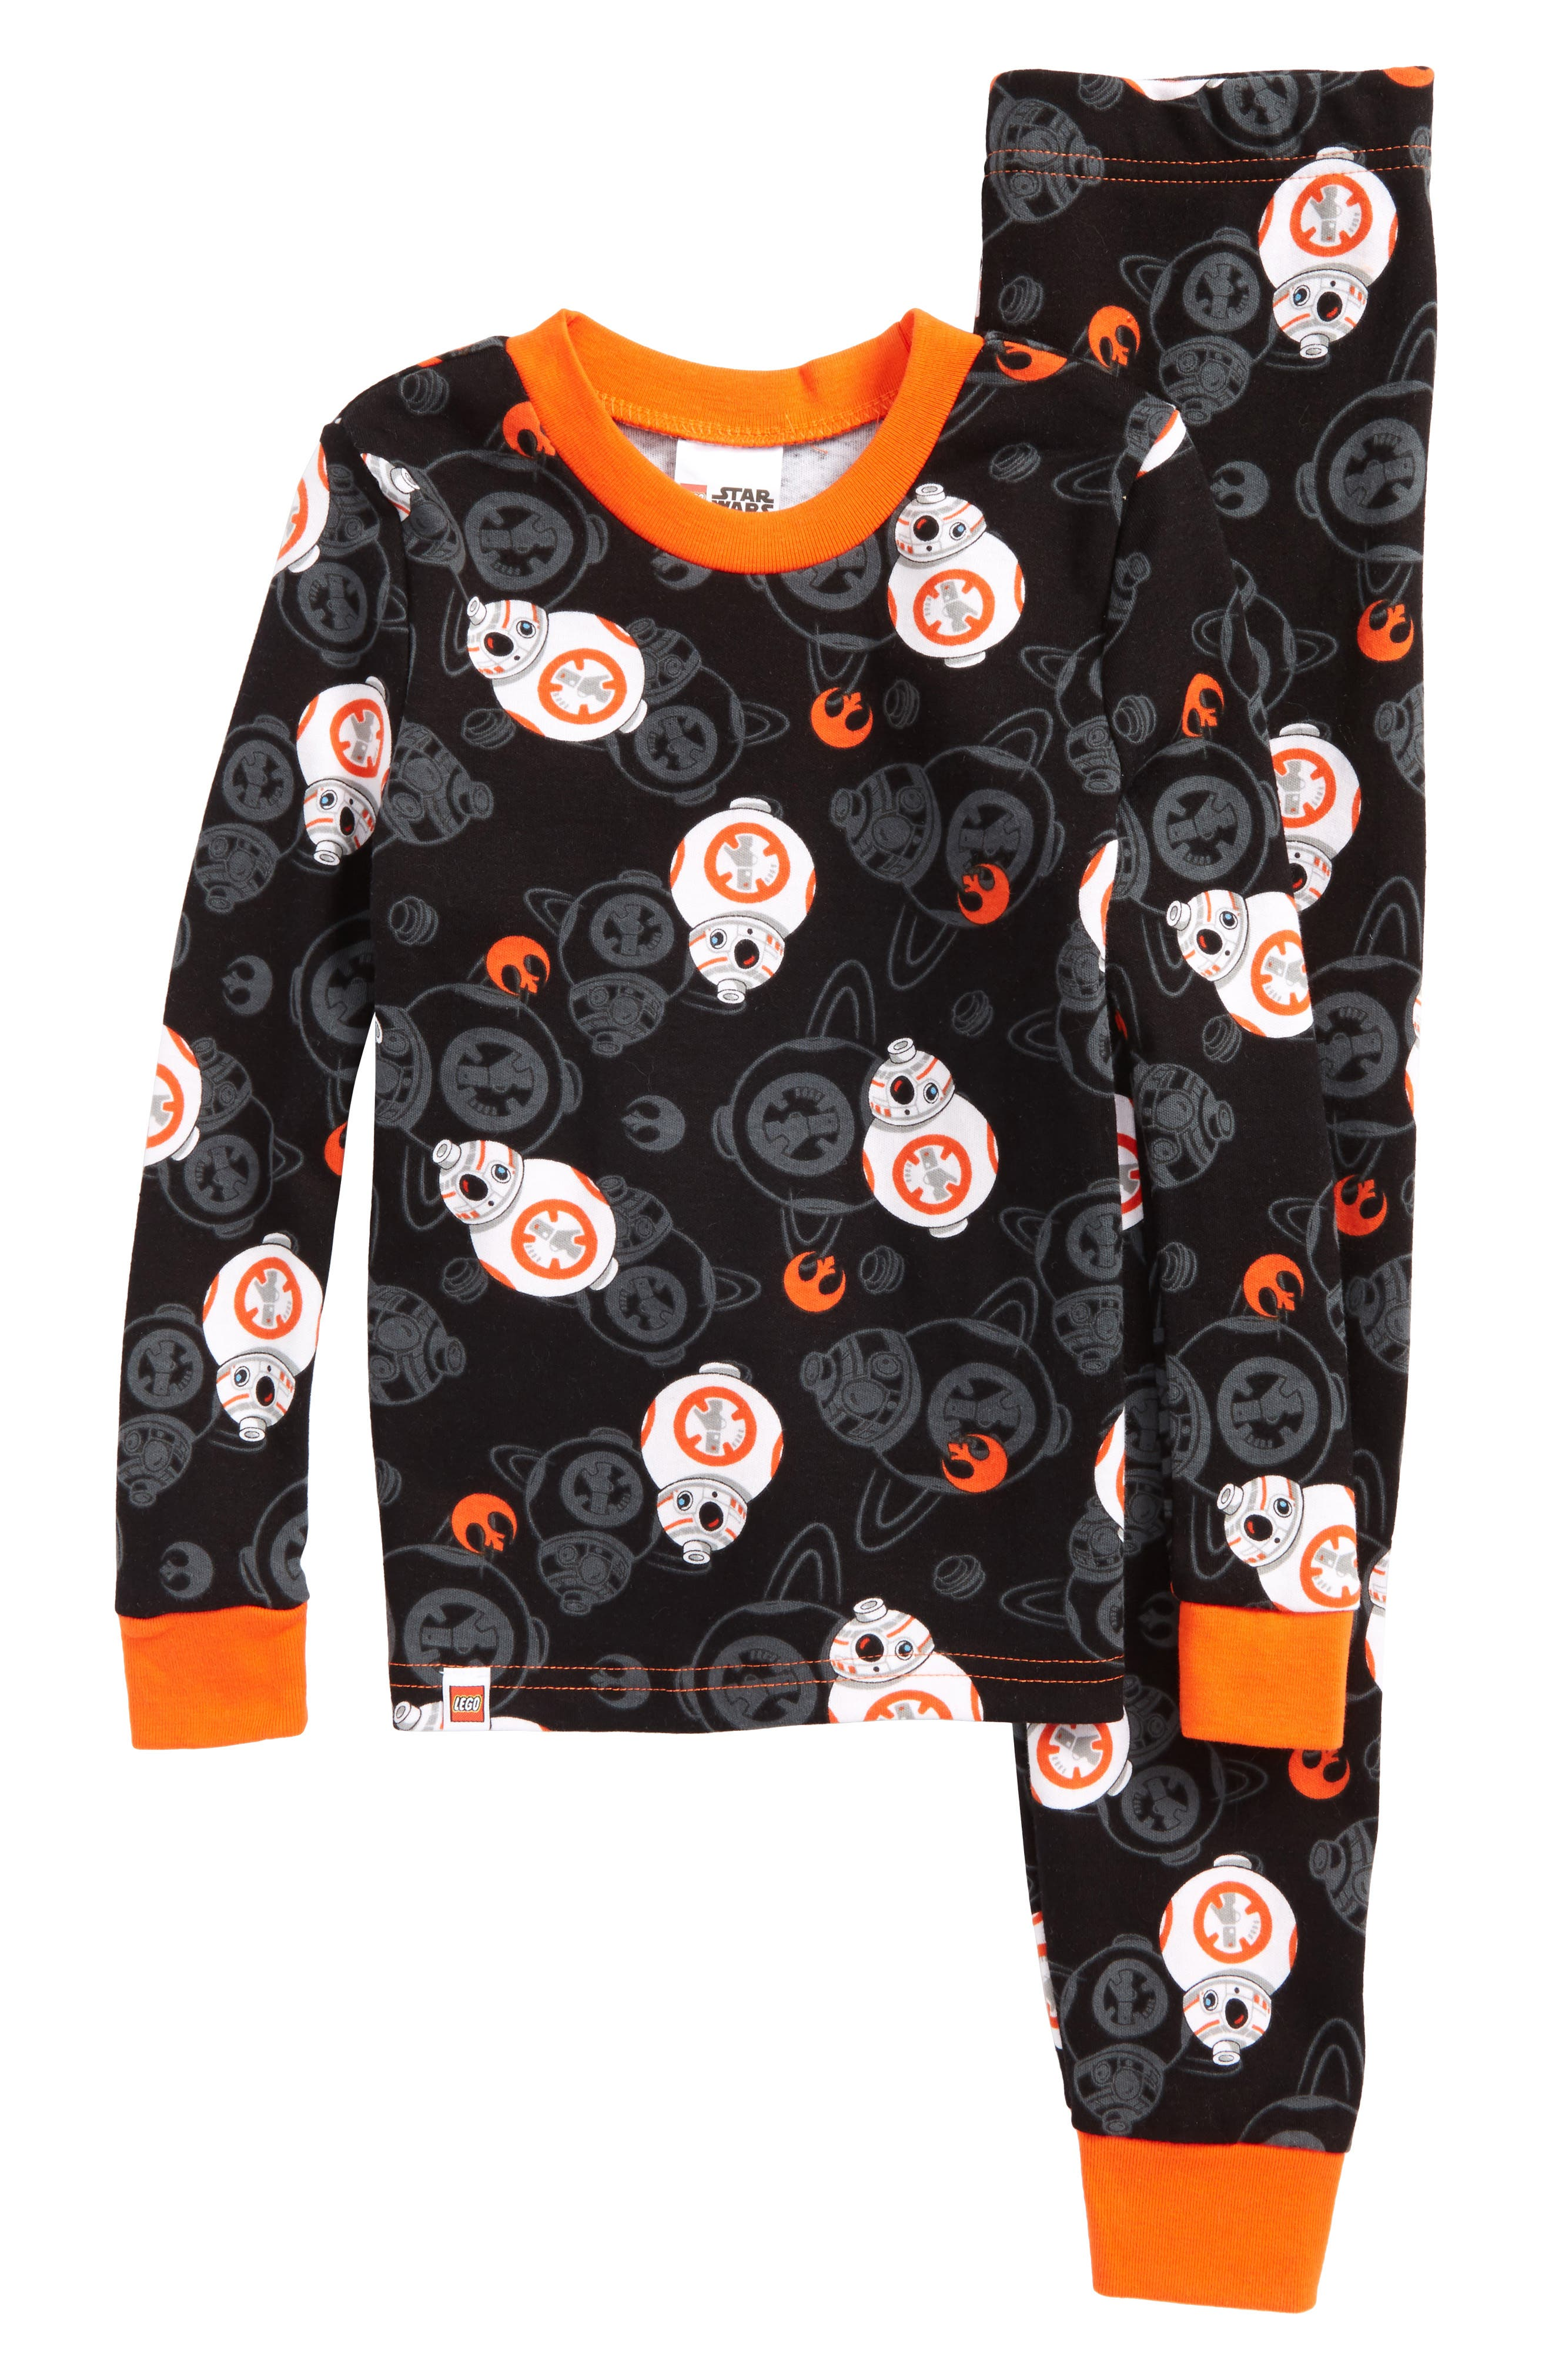 Lego Star Wars<sup>™</sup> BB-8 Fitted Two-Piece Cotton Pajama Set,                         Main,                         color, Black